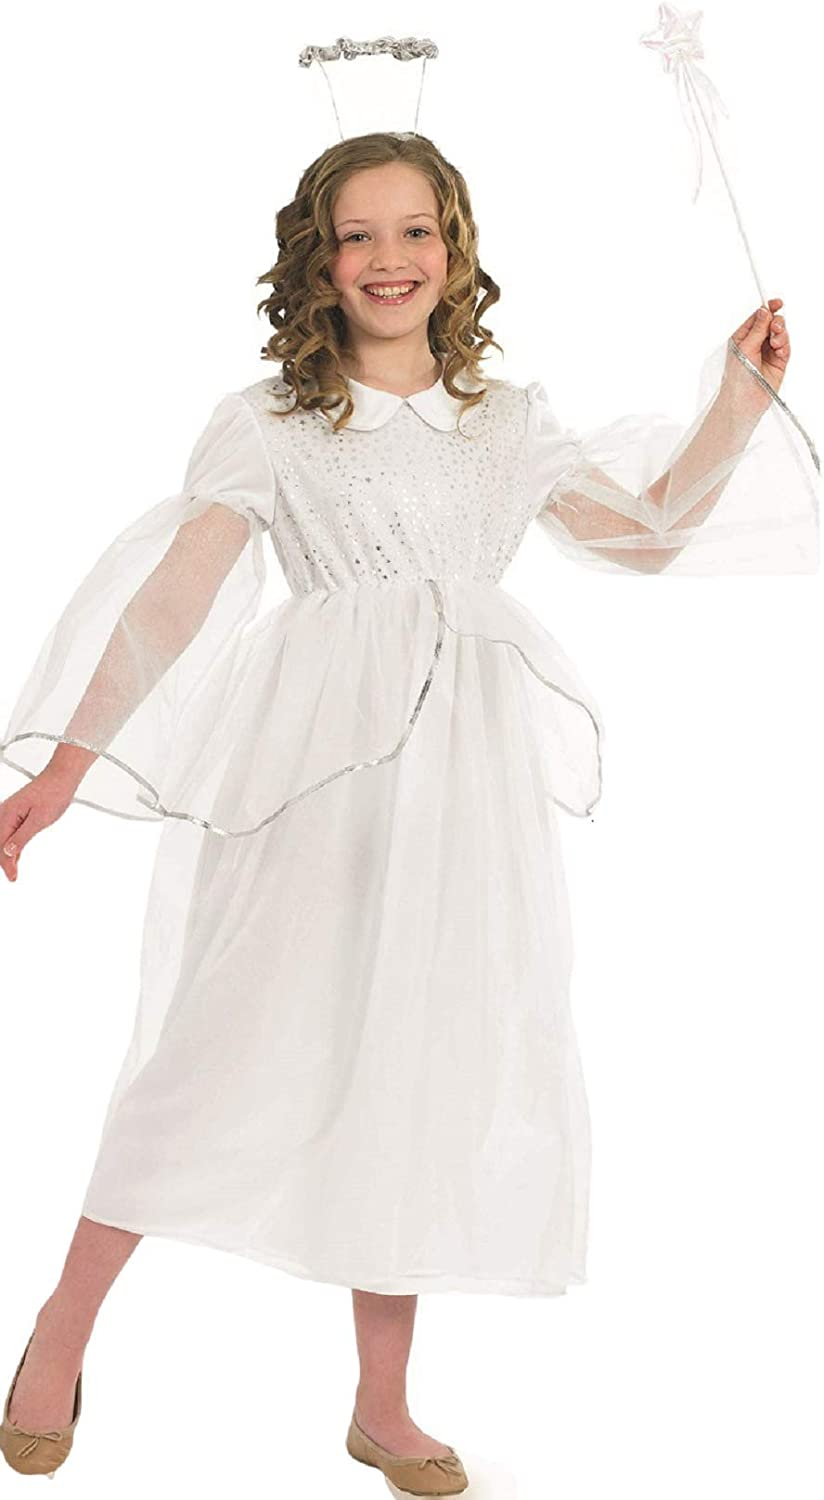 Childrens School Nativity Play Fancy Dress Costumes Outfit Dress Up 4-12 Yrs